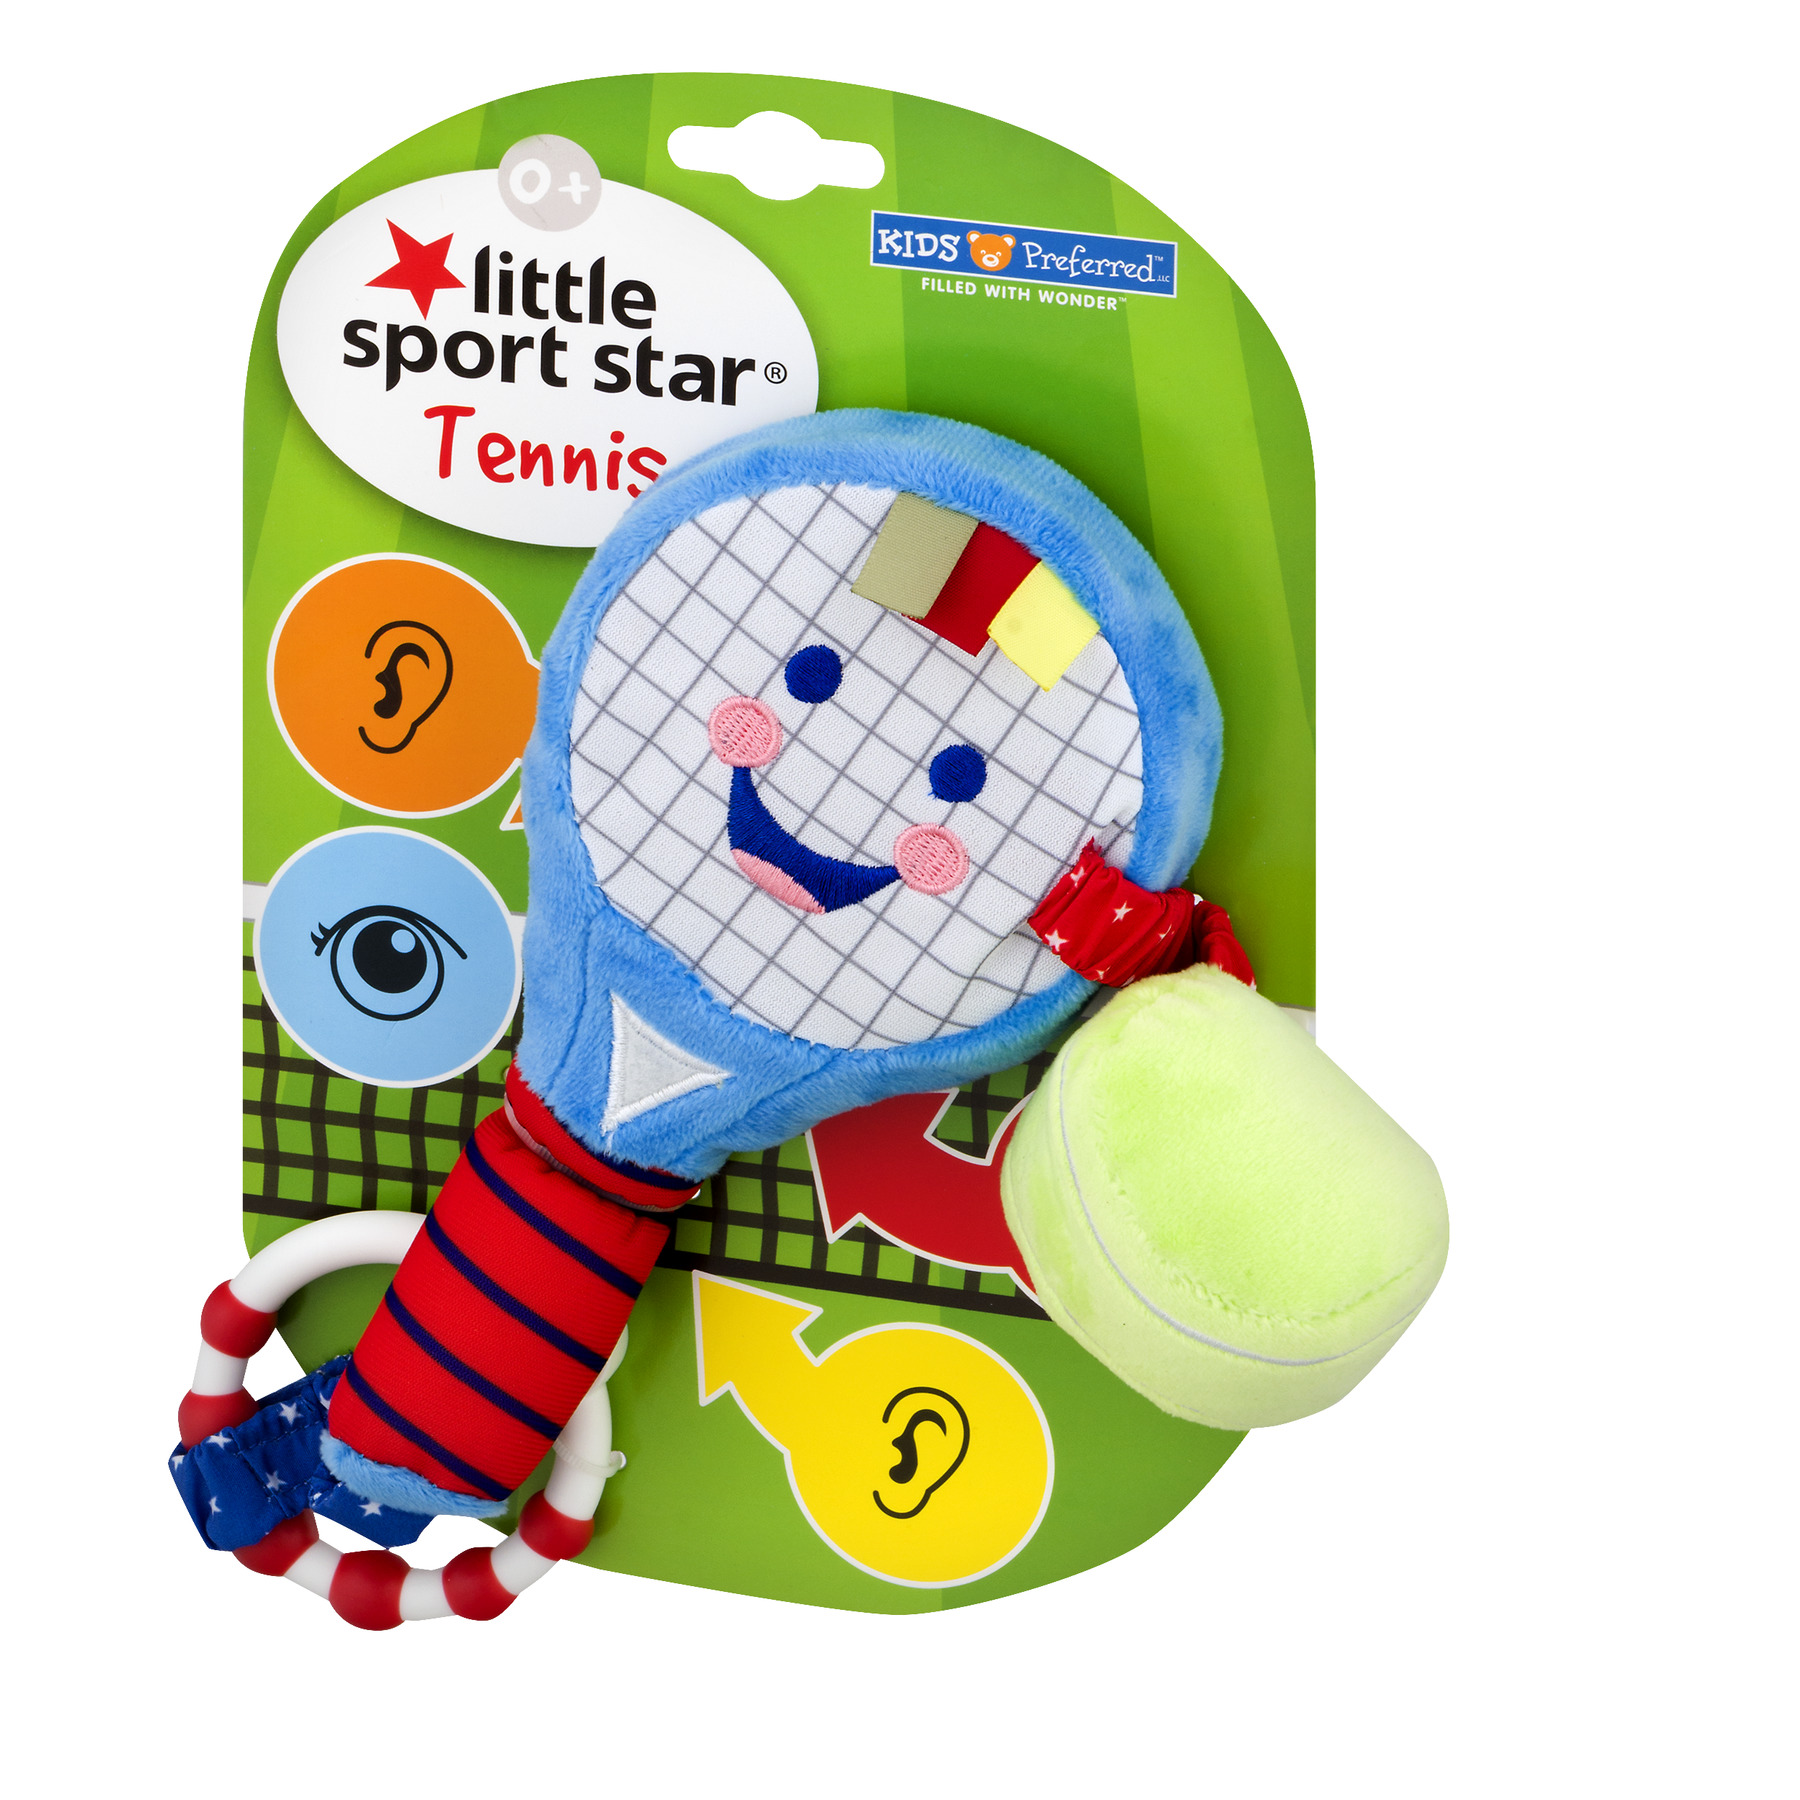 Great Baby Gift for Tennis Fans and a Great Toy for All Babies and Toddlers Baby Tennis Racket and Tennis Ball Recently Released on Little Sport Star Unisex Baby Toy